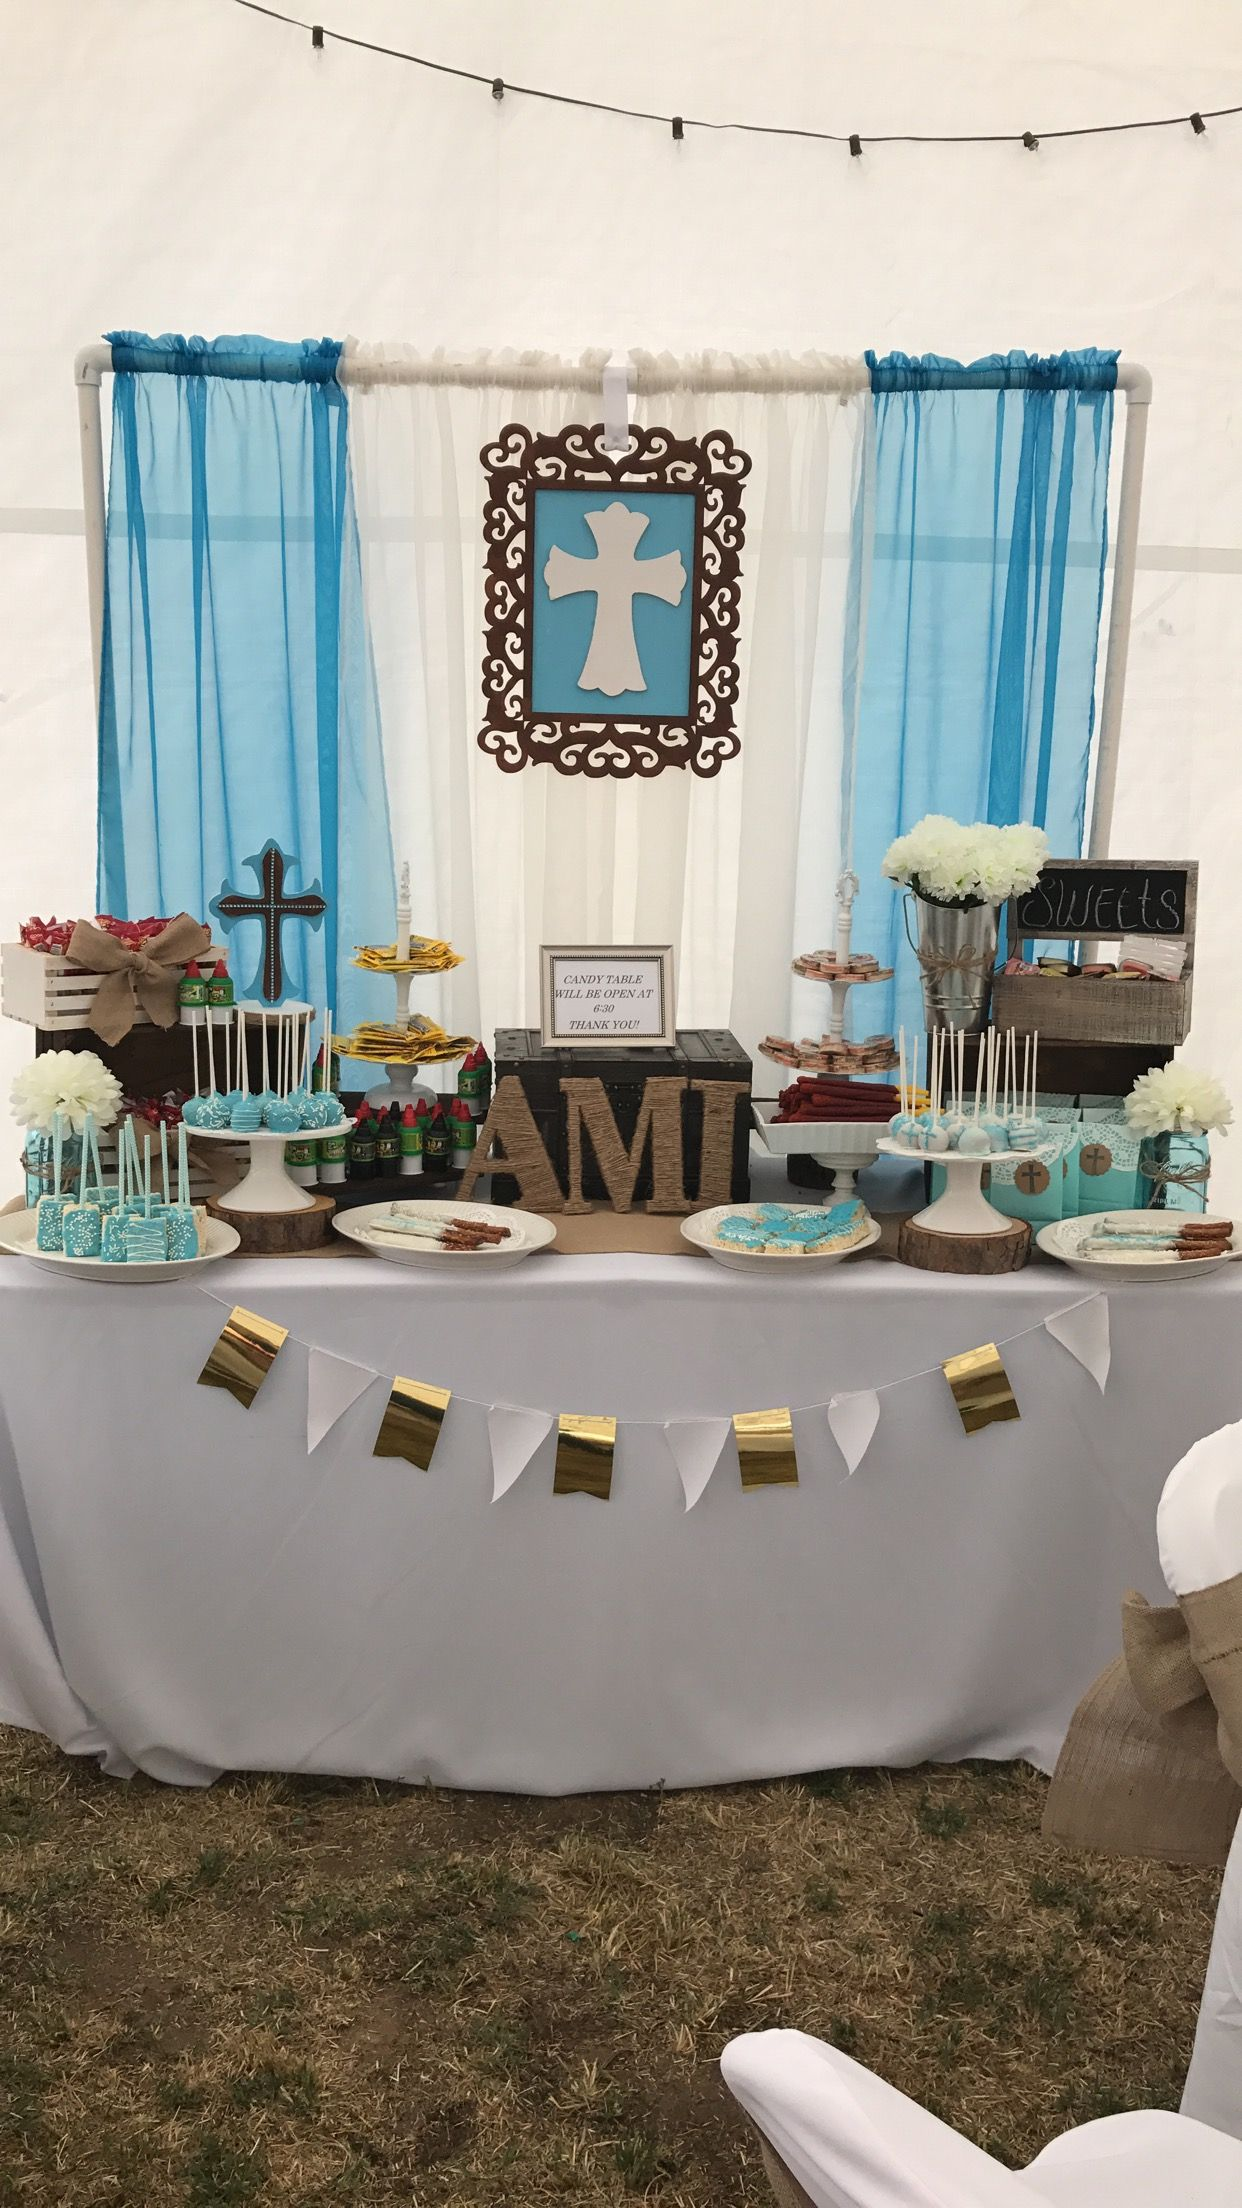 Rustic Candy Table Baptism Boy Rustic Baptism Party